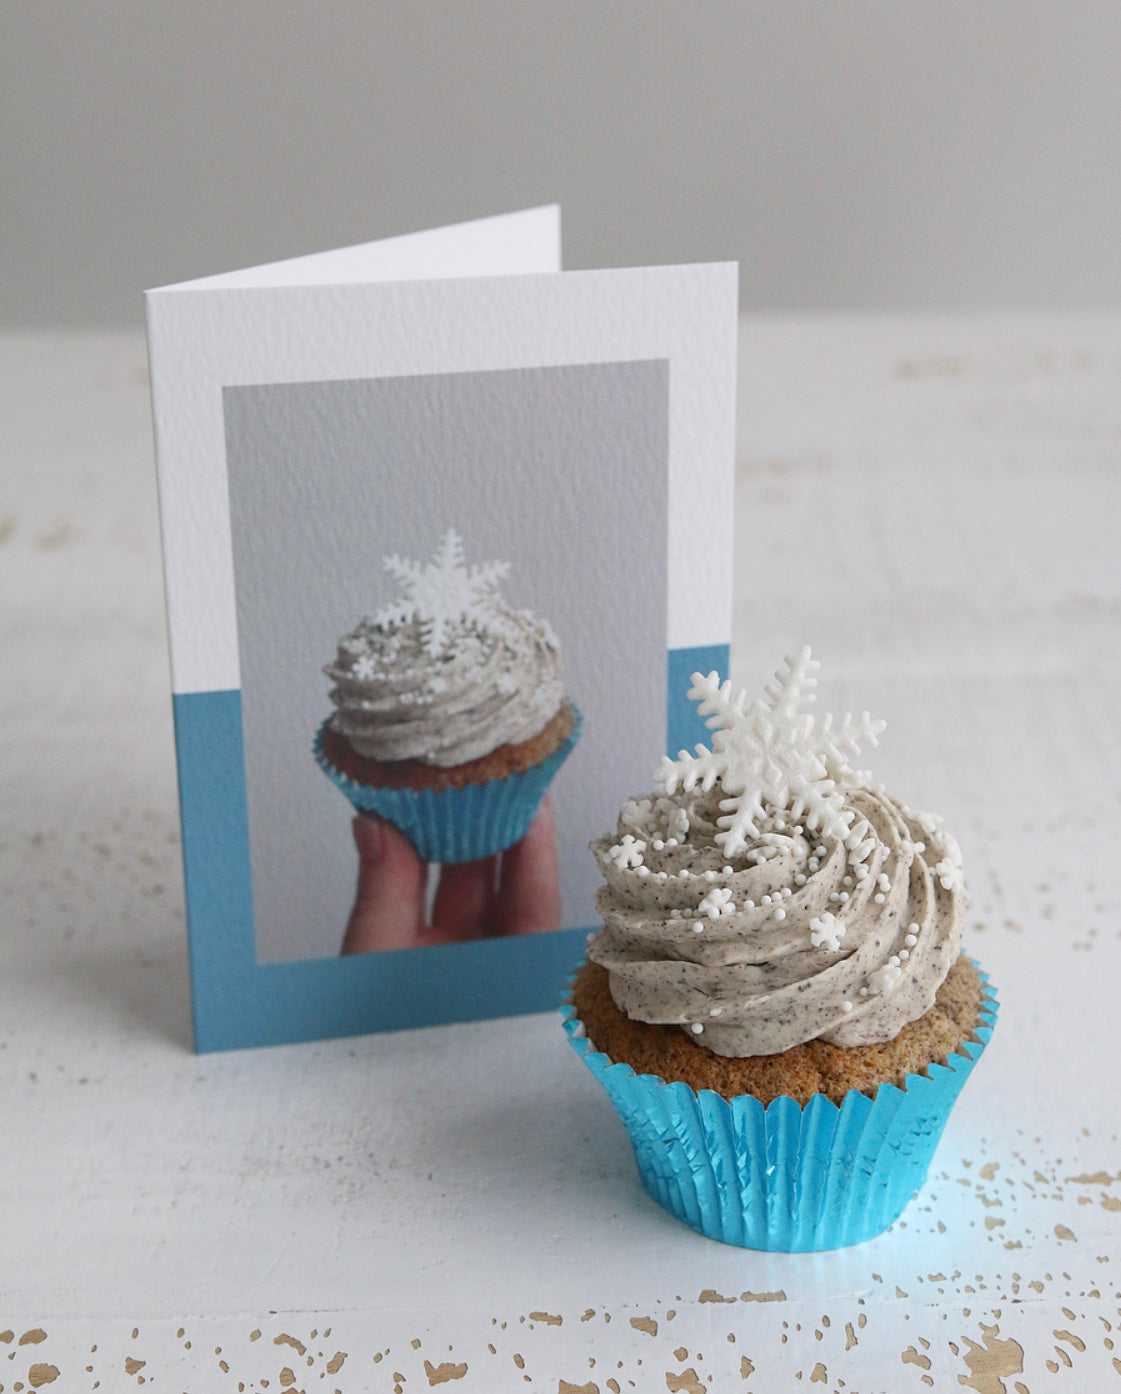 Snowflake Cupcake with Snowflake Cupcake Photo Christmas Card